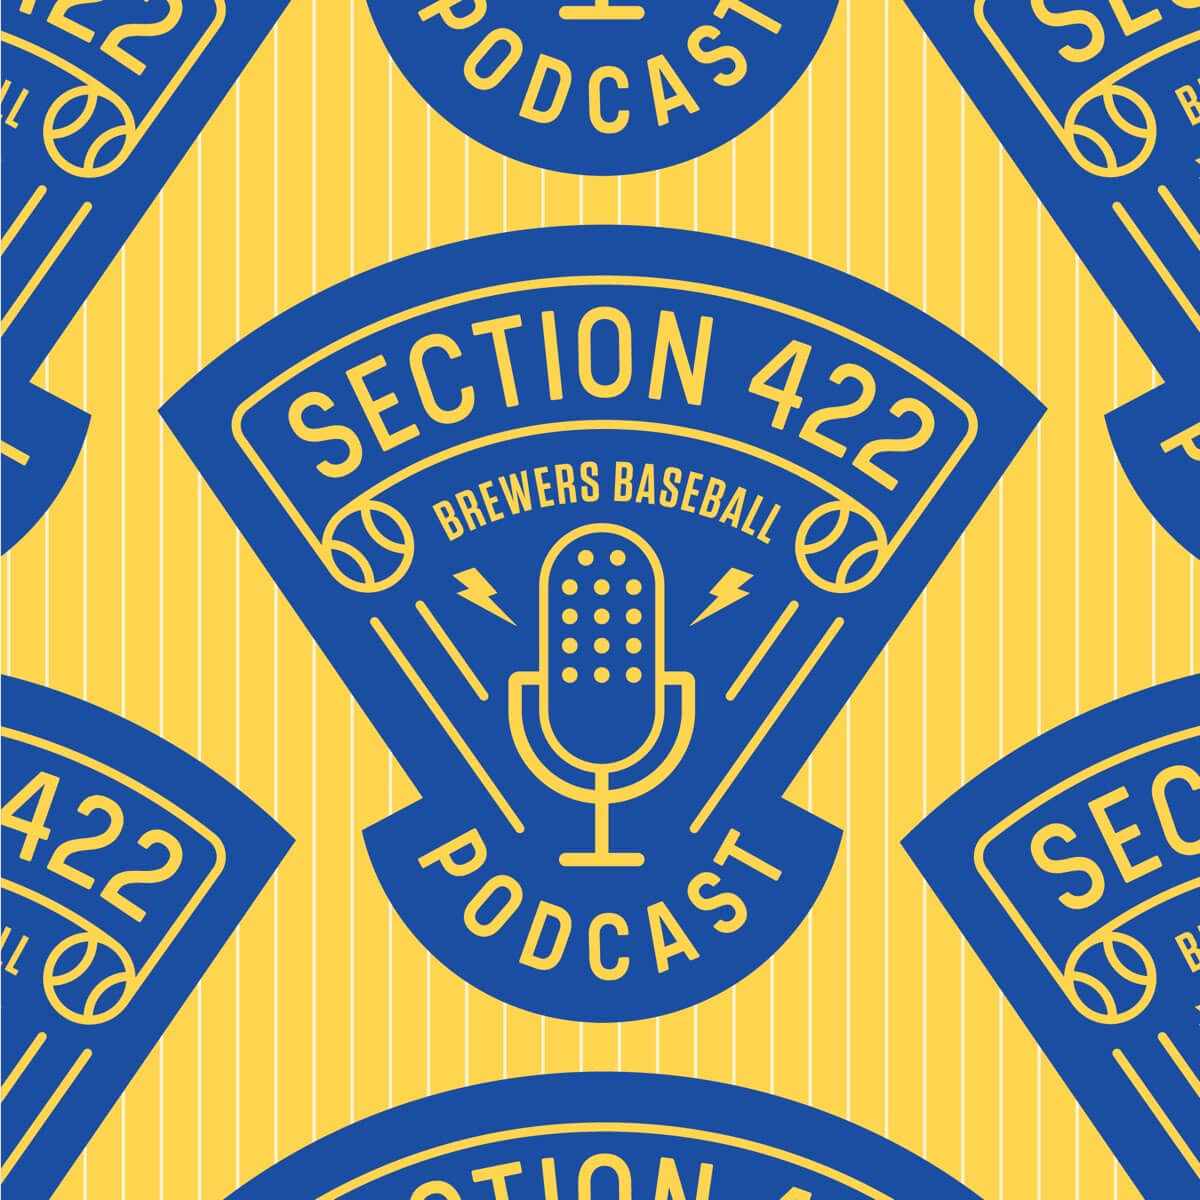 🎙️ New in Section 422! ⚾️  @DerekVanRiper & @WillSammon discuss the #Brewers' Wild Card series matchup with the Dodgers, and consider what it will take for the Crew to pull off an upset...  Listen 👇  Spotify: https://t.co/wzuRi1QUIG Apple: https://t.co/2xMKvBafIy https://t.co/EFIcgEFqTD